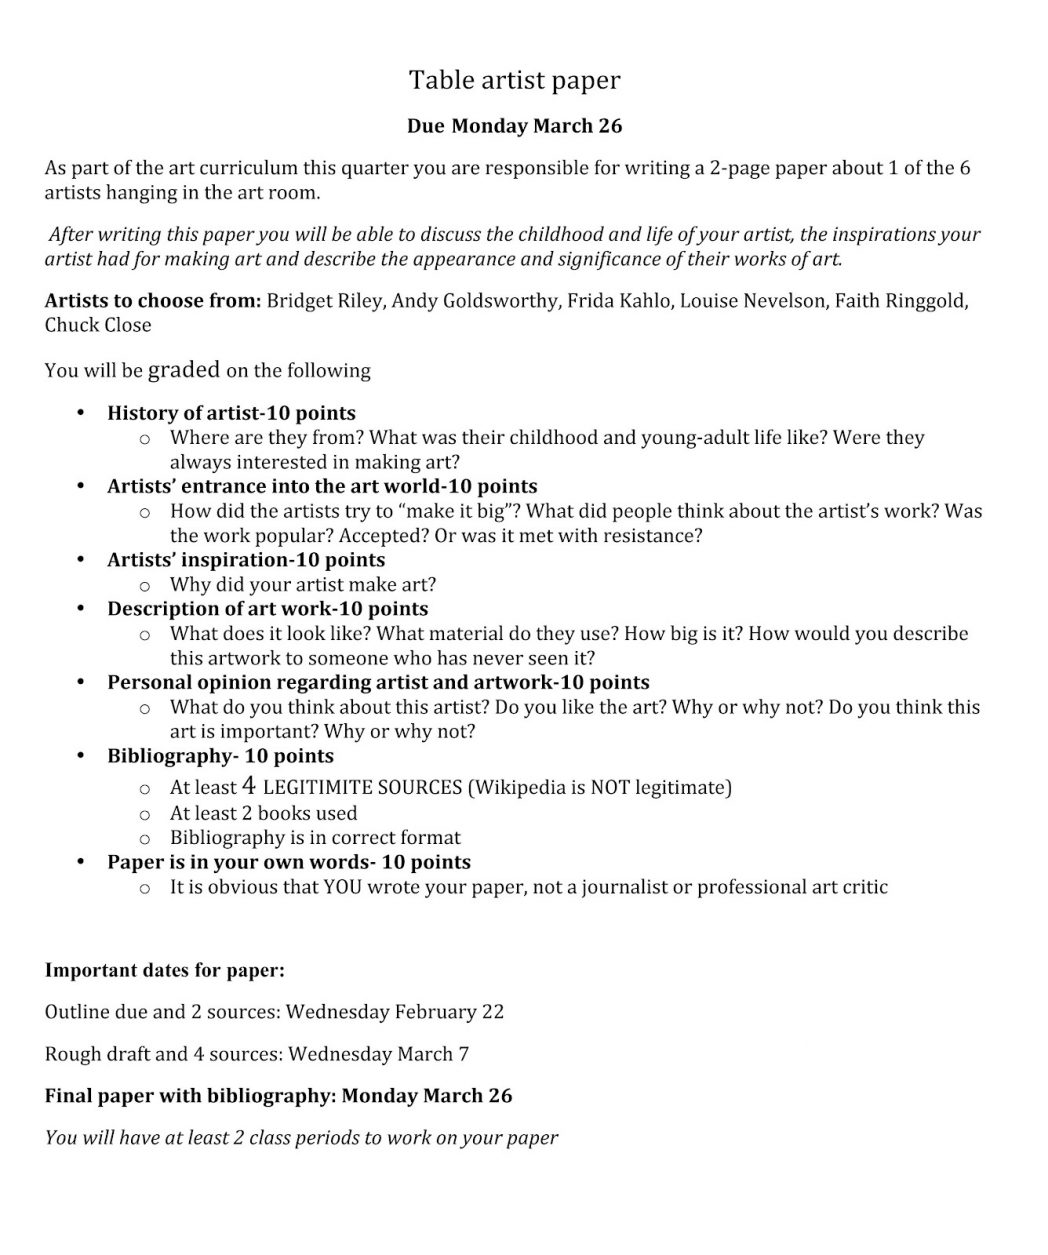 002 Art History Essays Uncategorized Impressionisms Writing Research Paper Papers Leaving20 Staggering Example Outline Template Sample Full